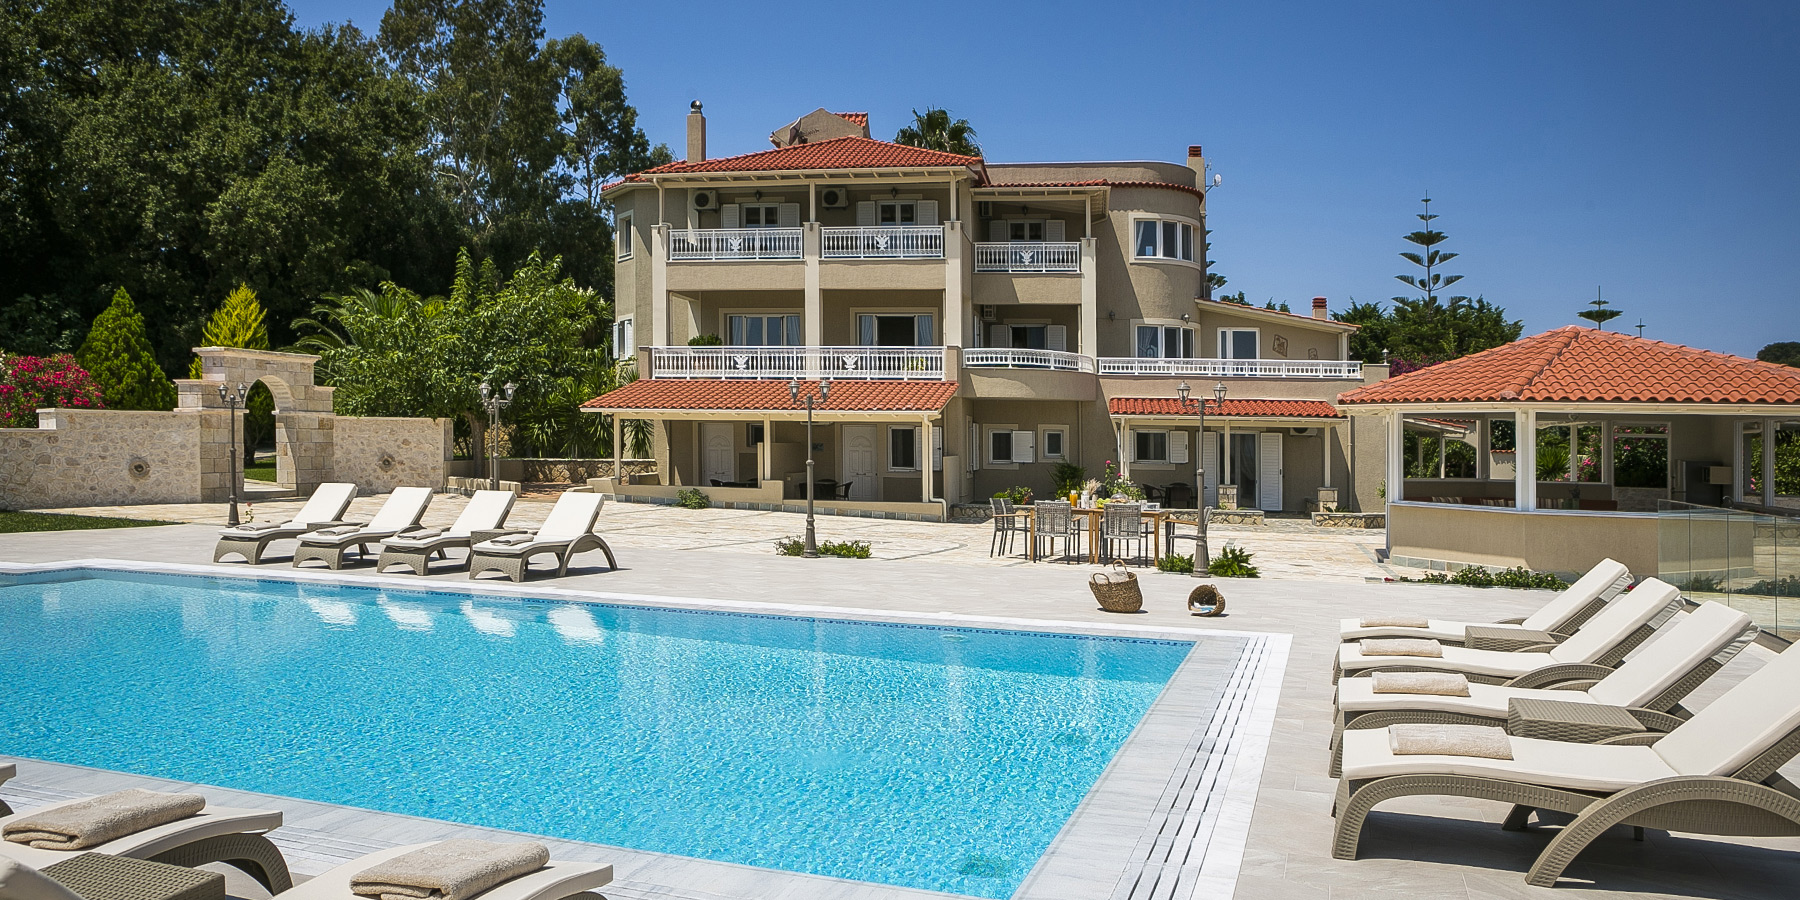 hidden_gem_estate_kefalonia_villa_002